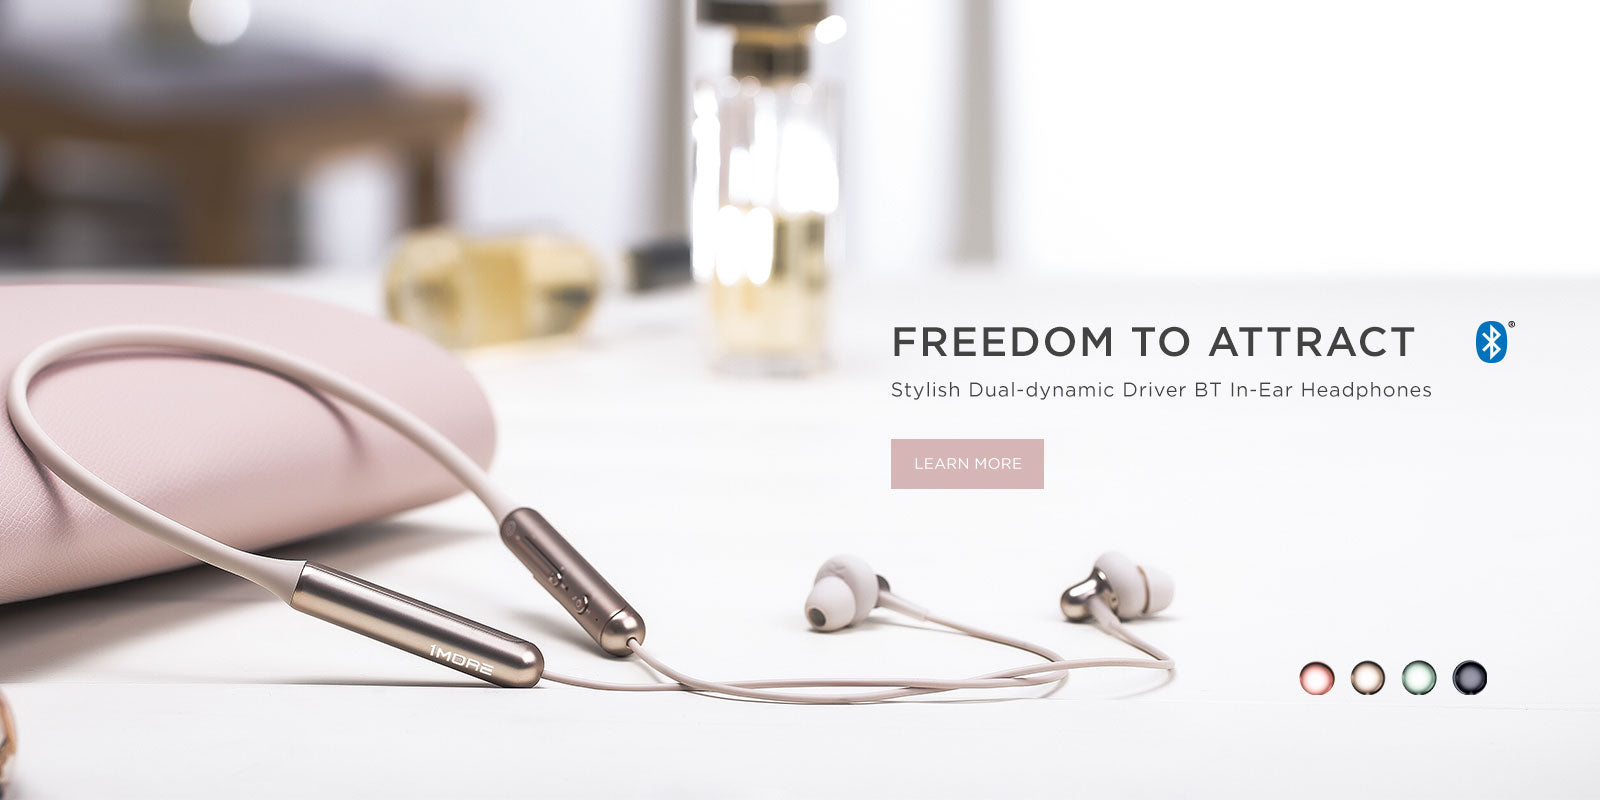 Award Winning 1more Headphones Free Download Sr Series Wiring Diagram Https Collections Products Stylish Dual Dynamic Driver Bt In Ear